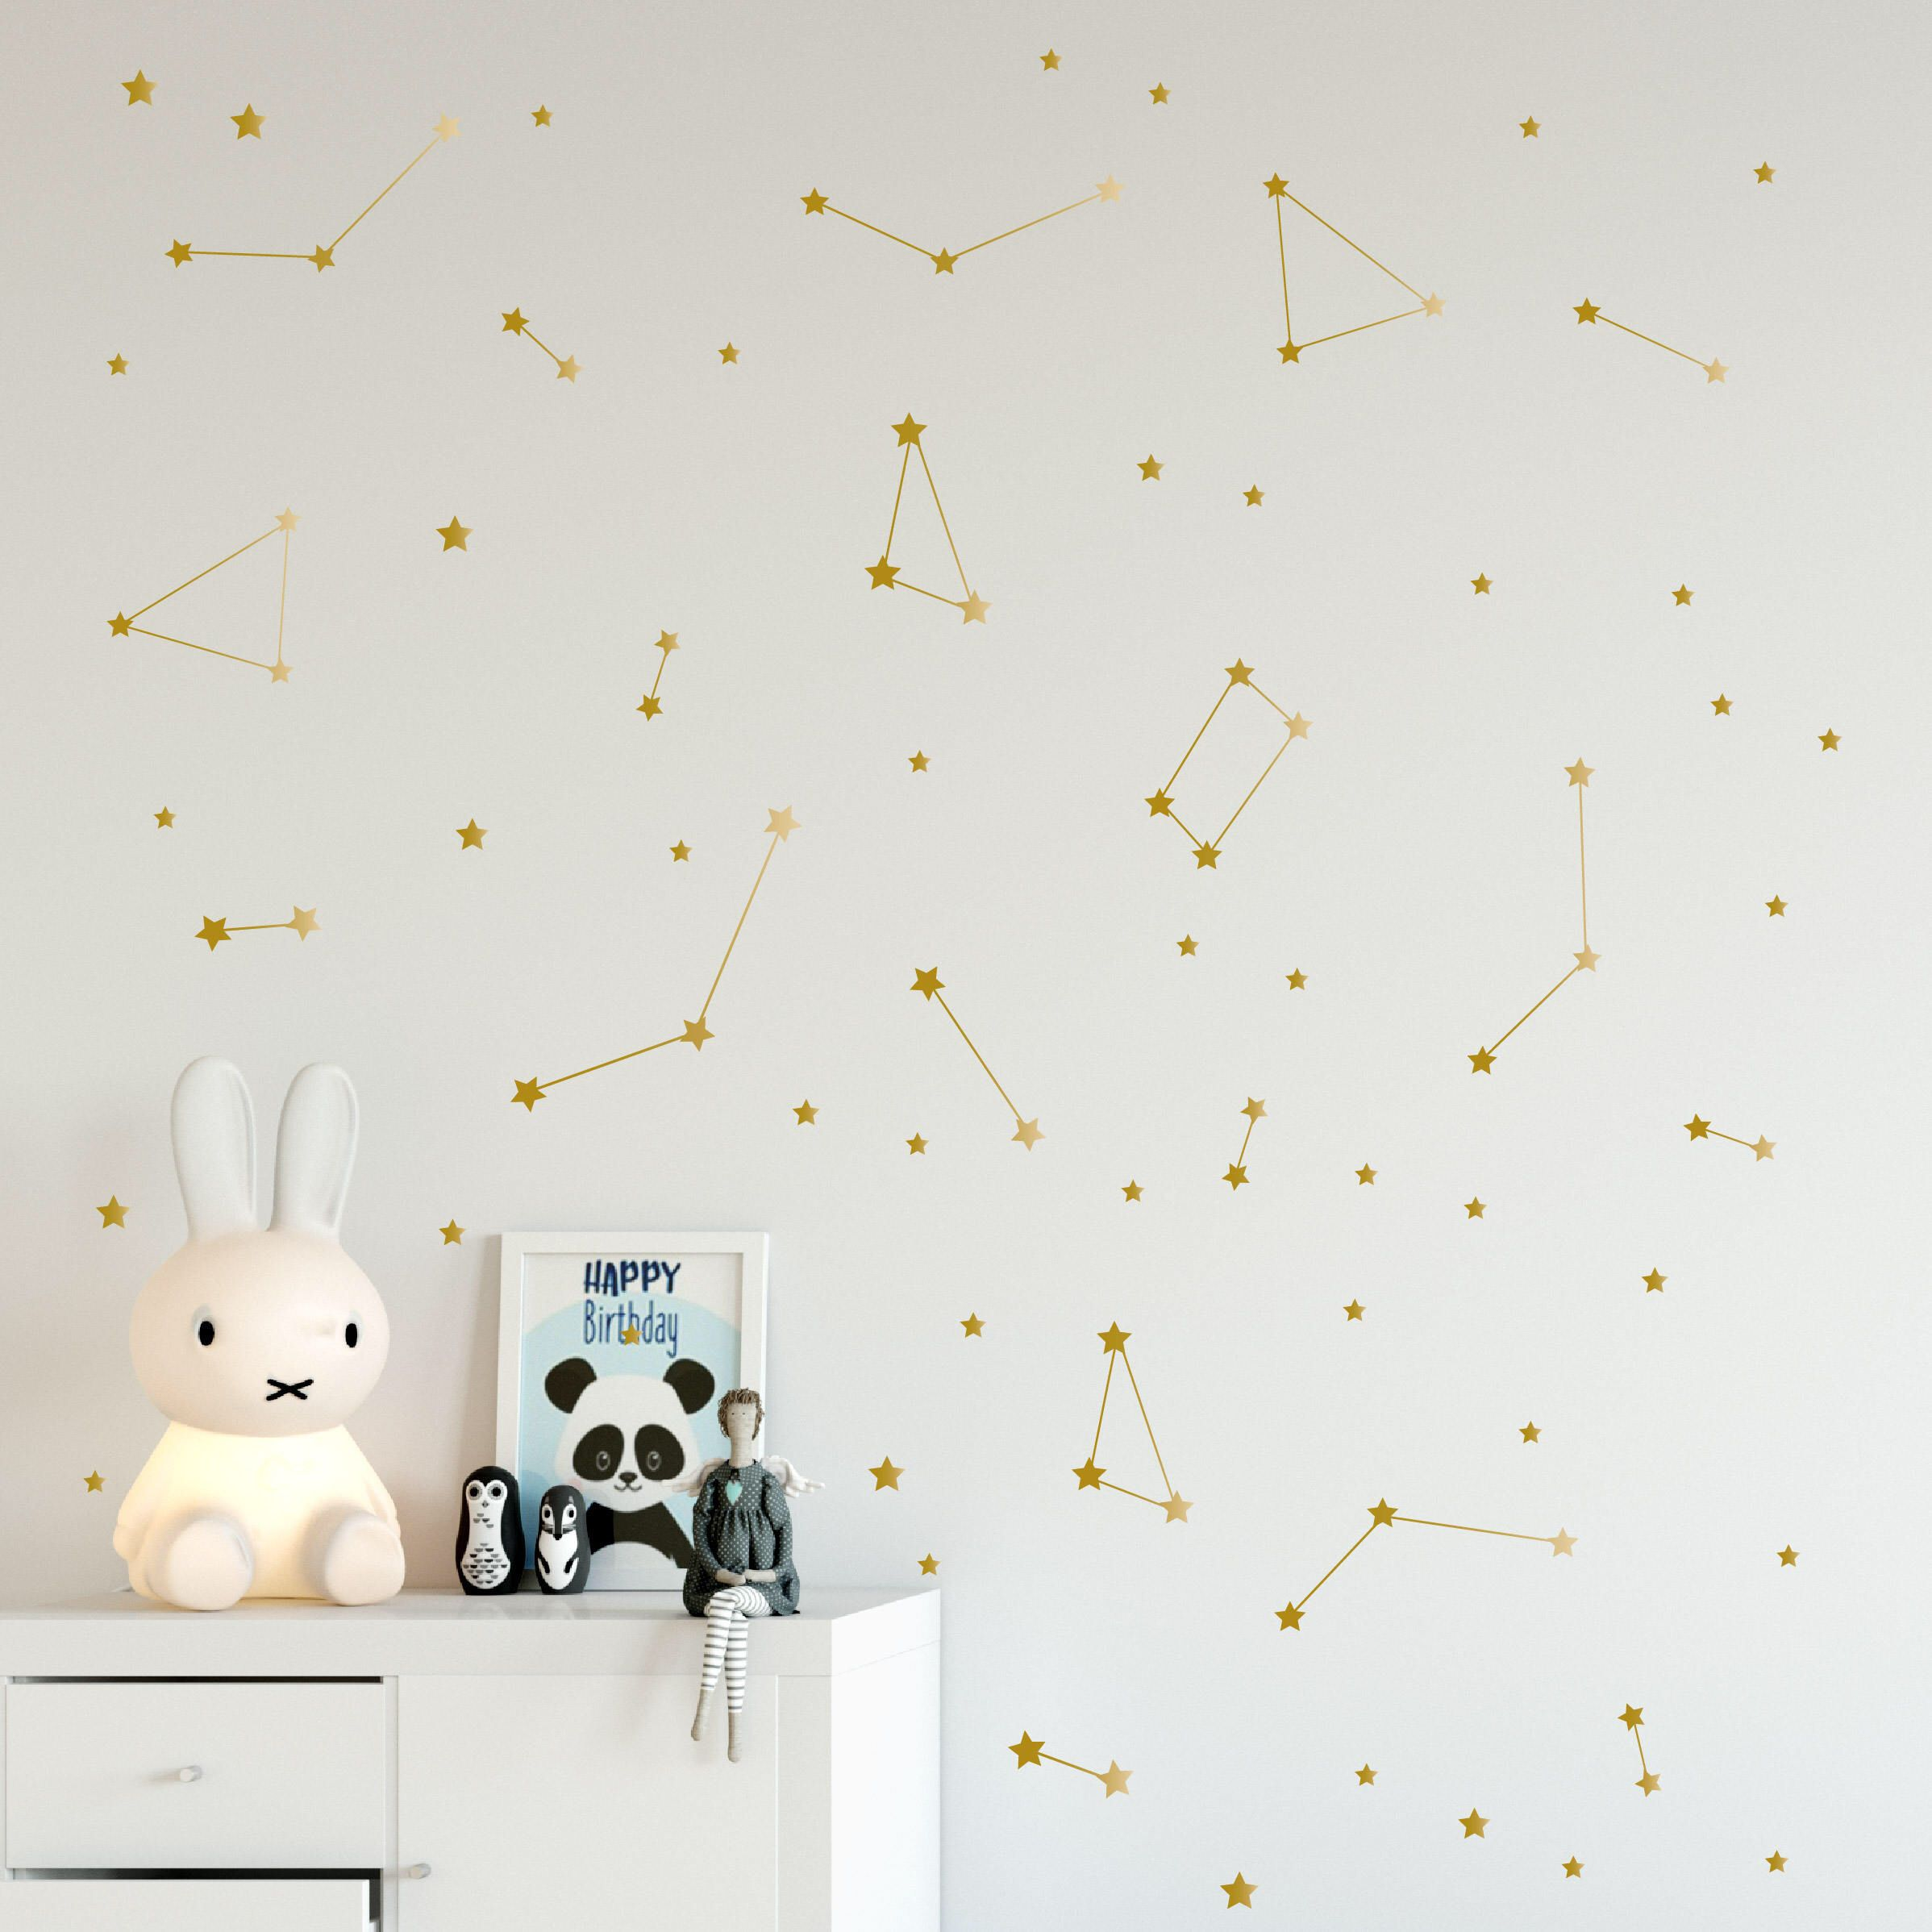 Constellation Wall Decal Zodiac Astronomy Stickers Gold Etsy Constellation Wall Decal Star Wall Decals Outer Space Nursery